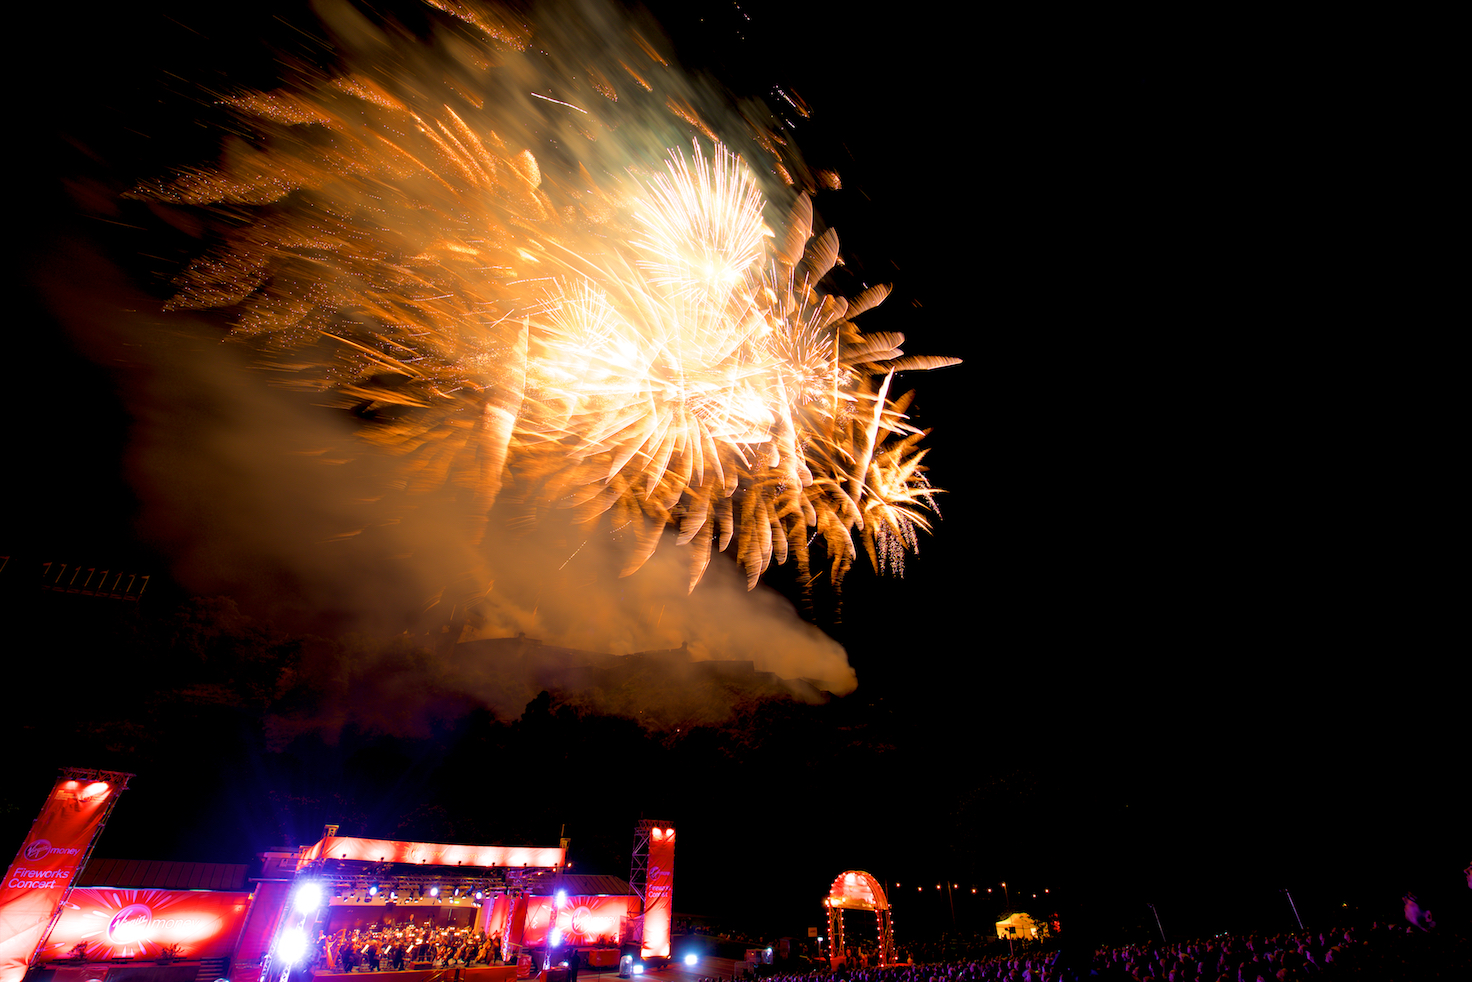 virgin-money-fireworks-concert-edinburgh-castleedinburgh-international-festival-edinburgh-castle-29th-august-2016-16